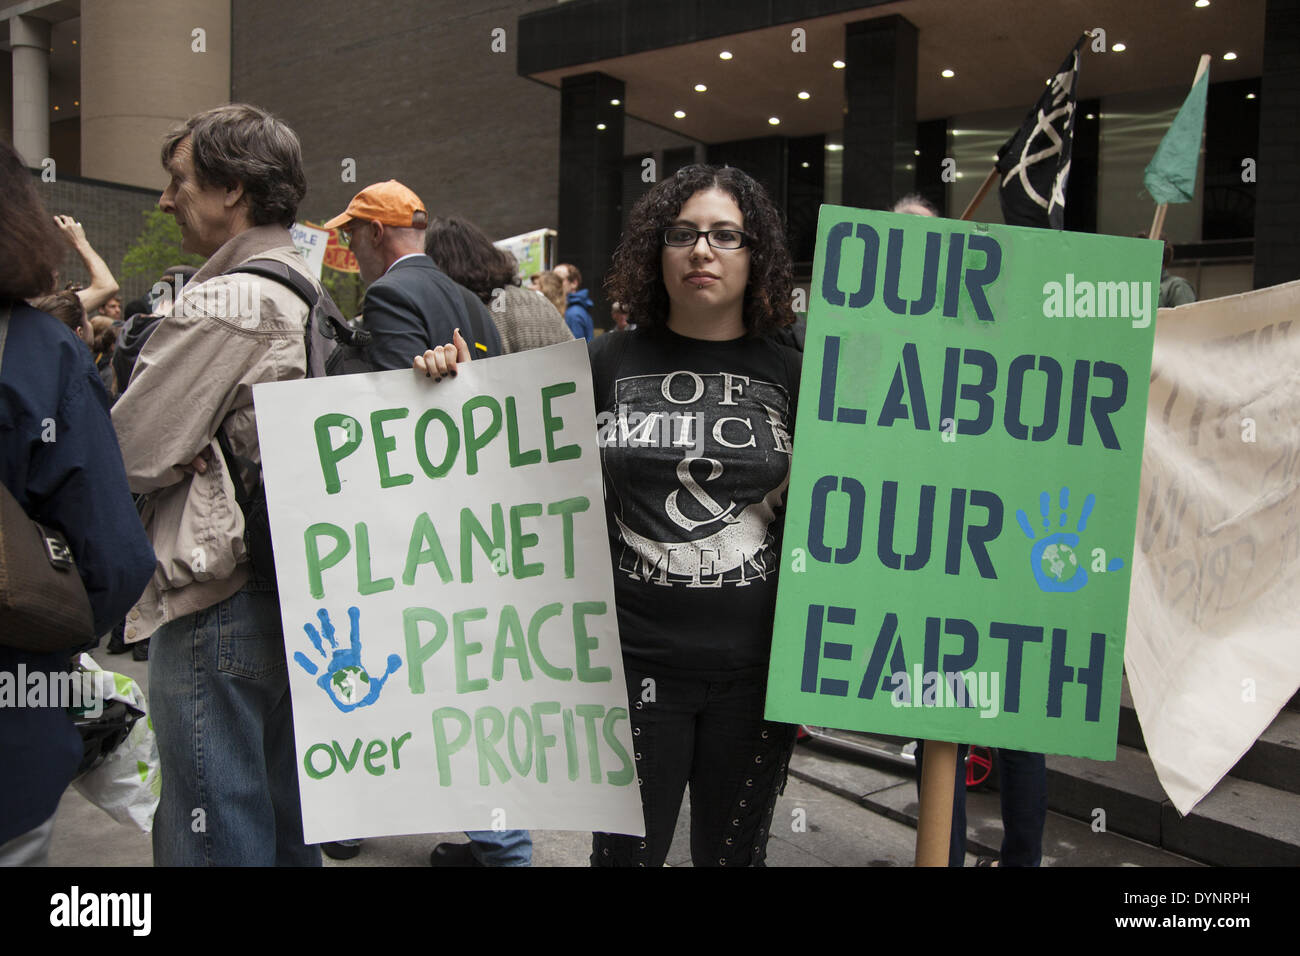 New York, NY, USA , 22nd Apr, 2014. Environmental activists rally on Earth Day at Zuccotti Park, then march to Wall Stock Photo